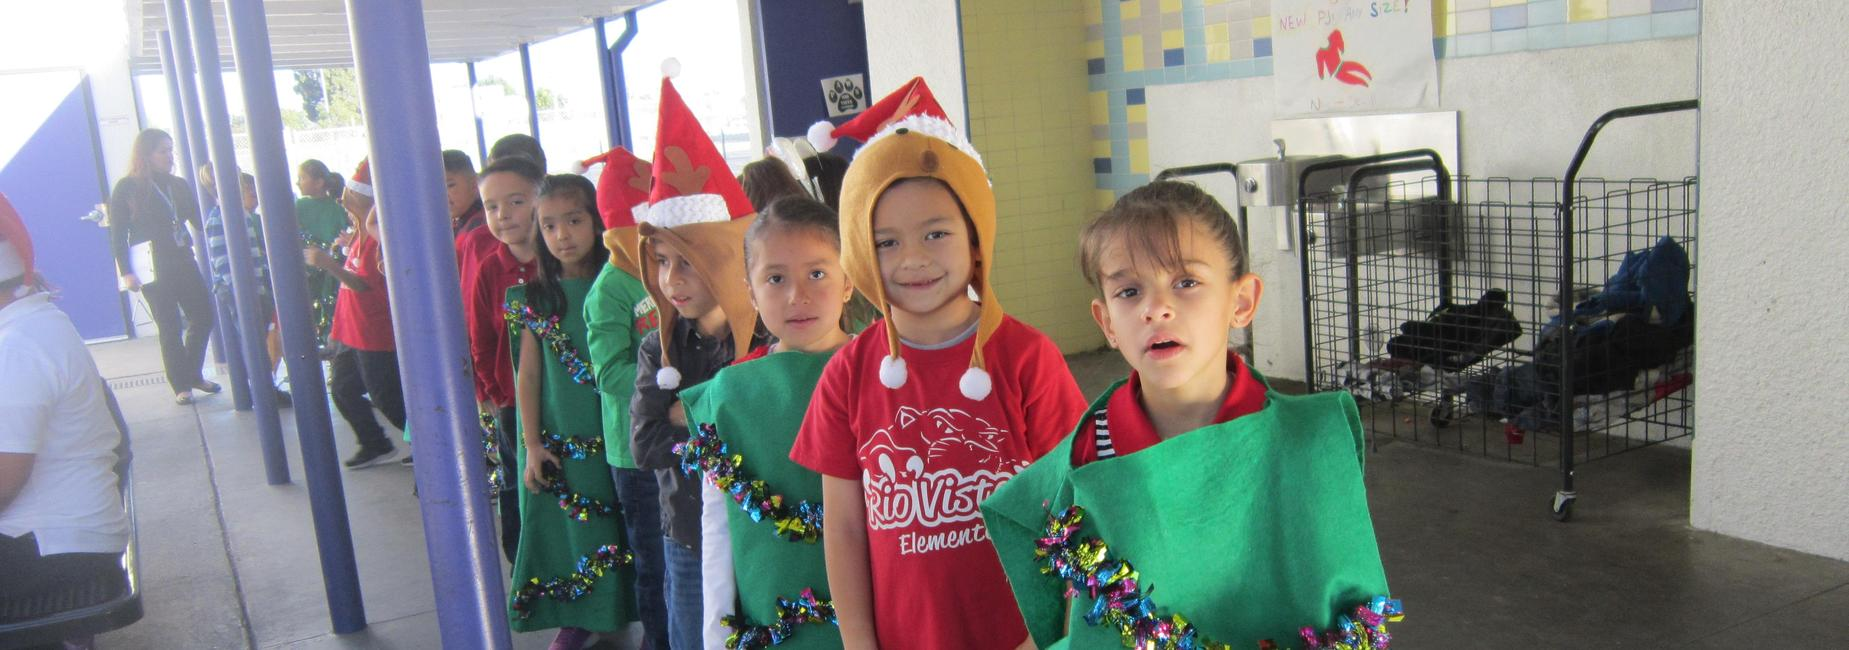 Students stand in line in costume for the Christmas show.